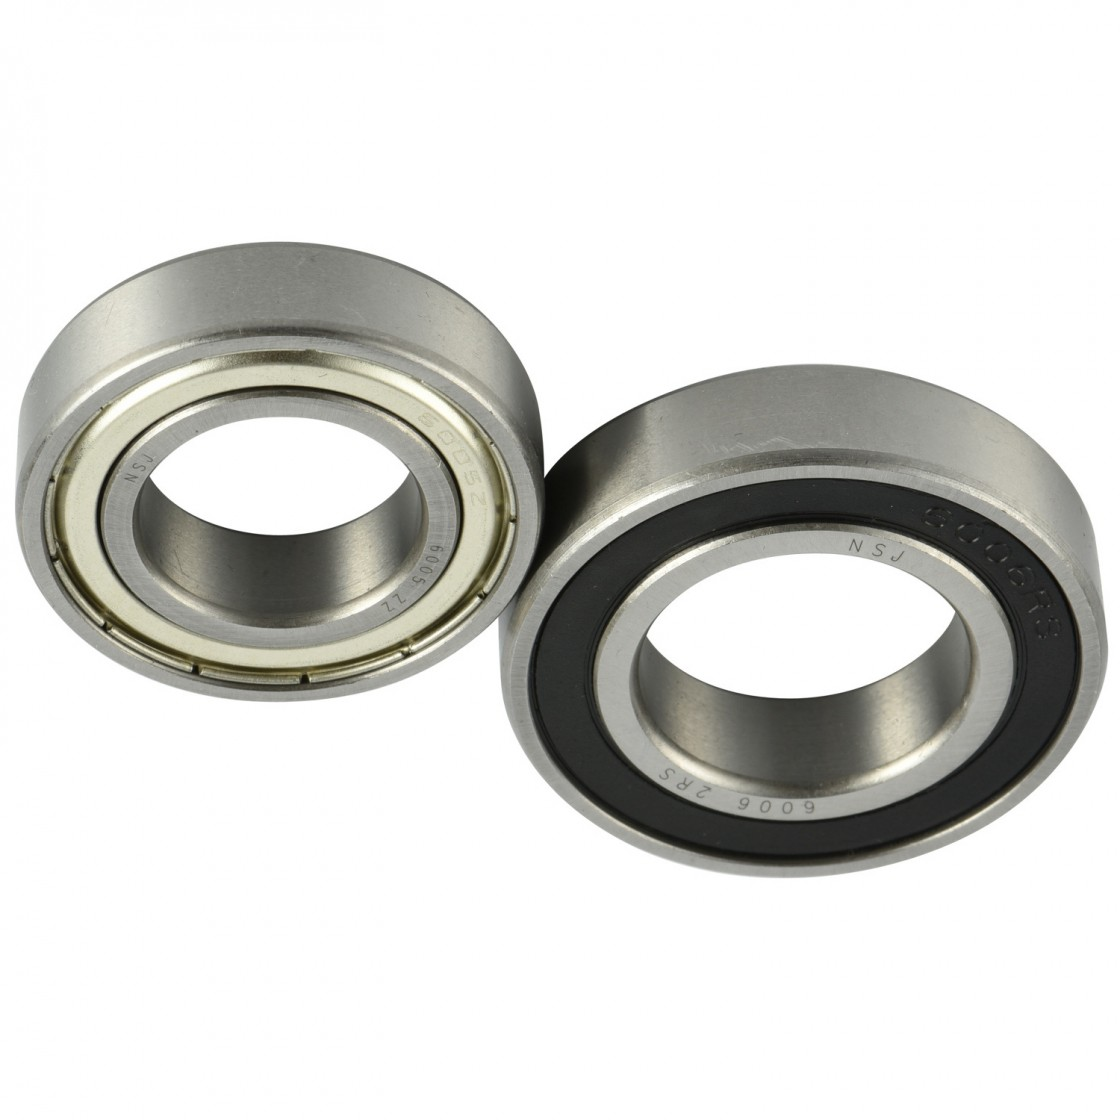 Auto Parts Bearing Spare Parts Bearings (30213 32213 30312 31313) Motorcycle Parts Tapered Roller Bearing